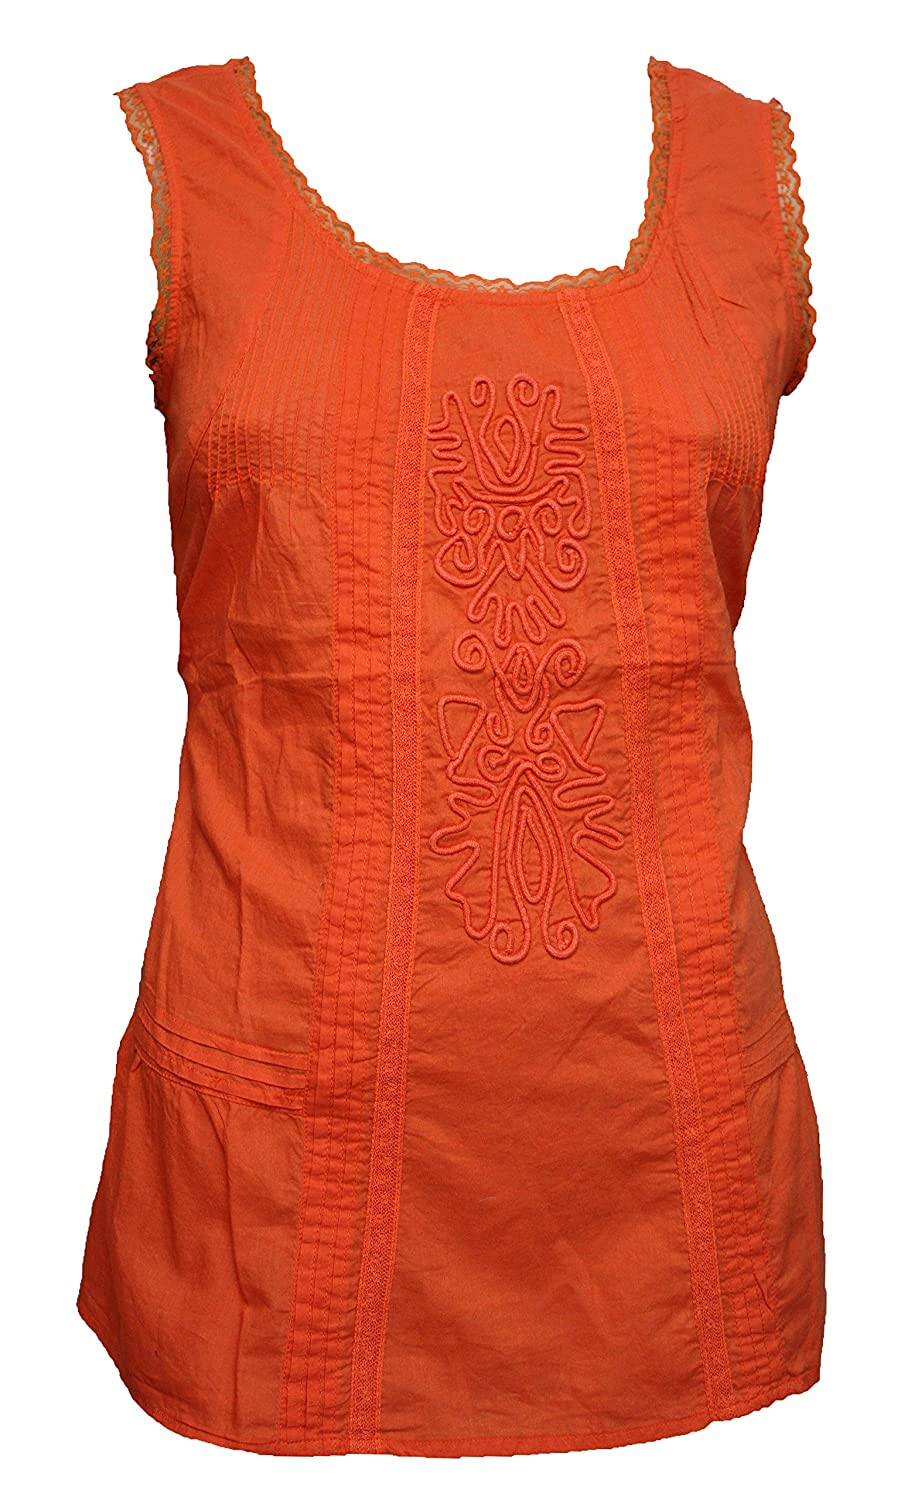 2a641ce8eff Burnt Orange Sleeveless Cotton Tunic With Raised Decoration. Sizes 8-18:  Amazon.co.uk: Clothing